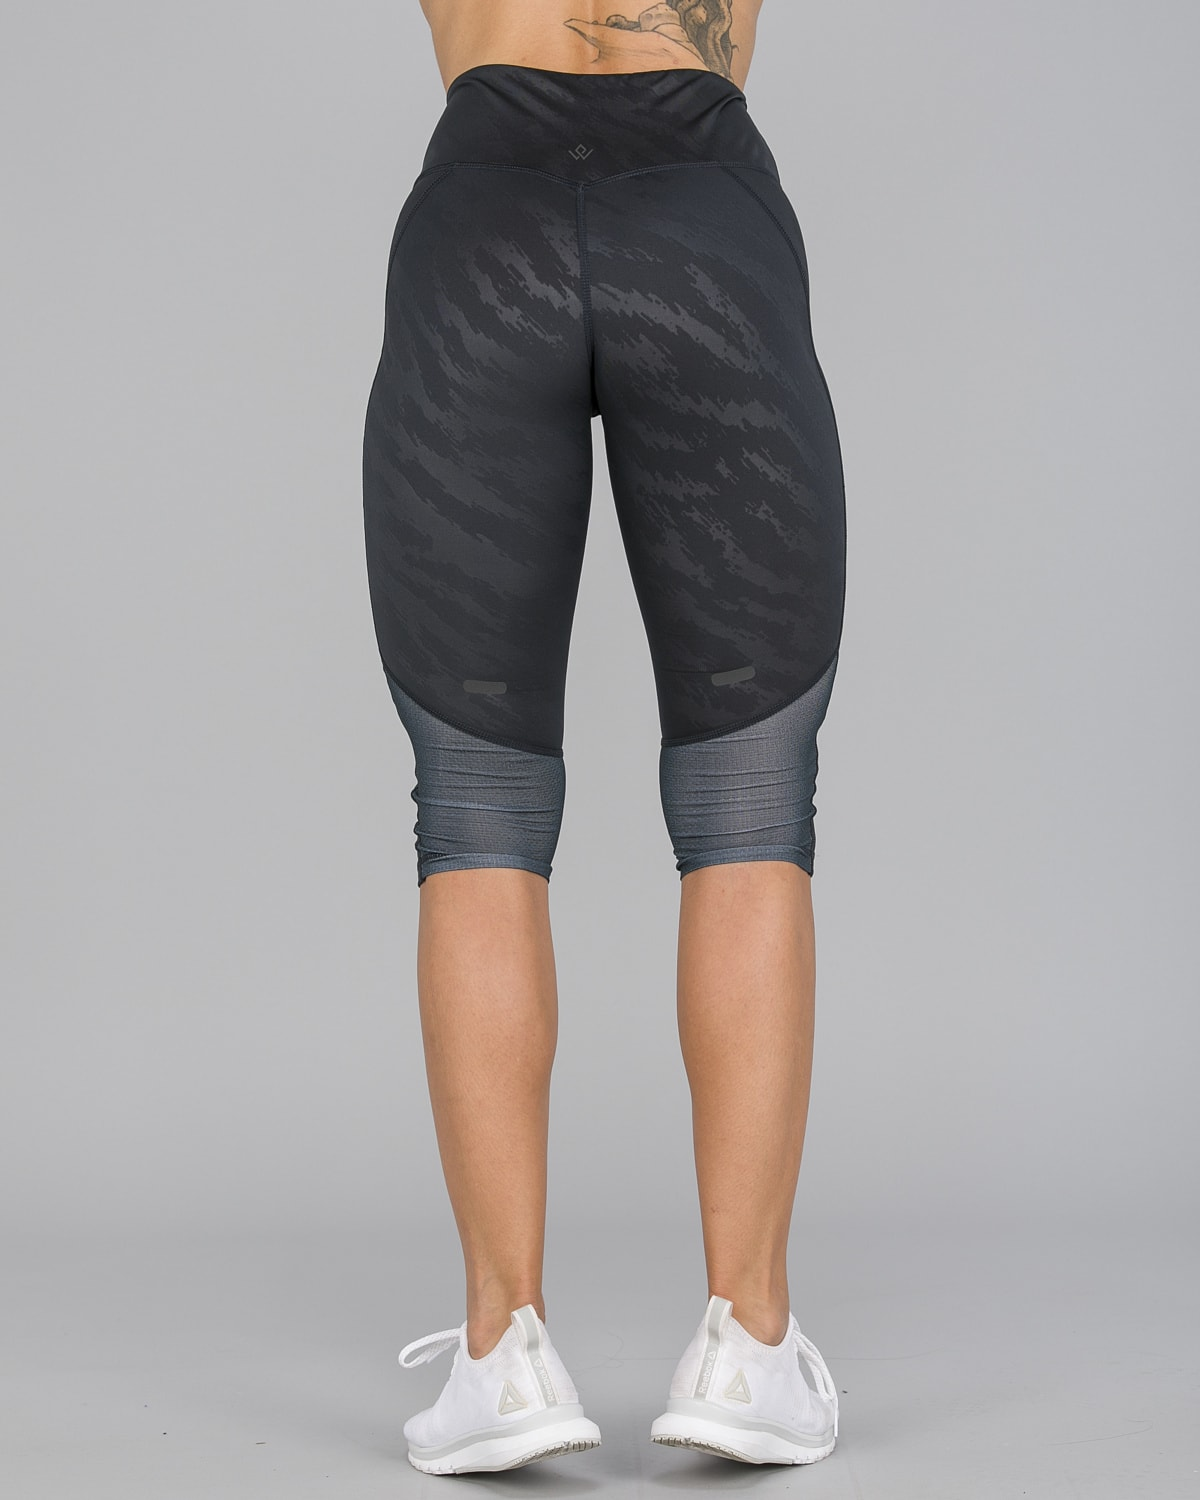 Workout Empire – Elevate 3:4 Leggings – Svart8